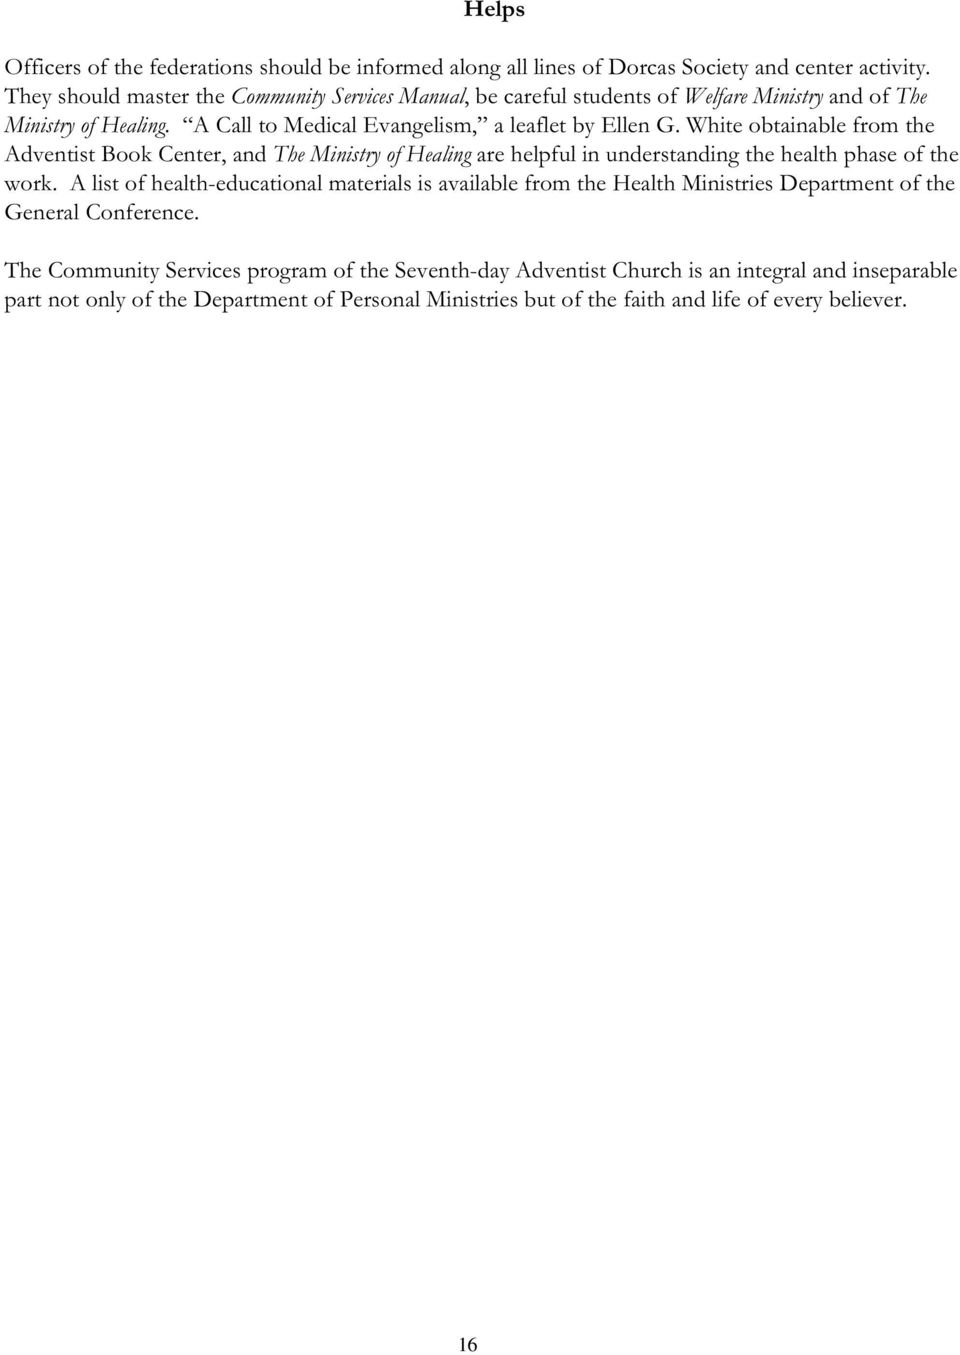 seventh day adventist ministers manual pdf